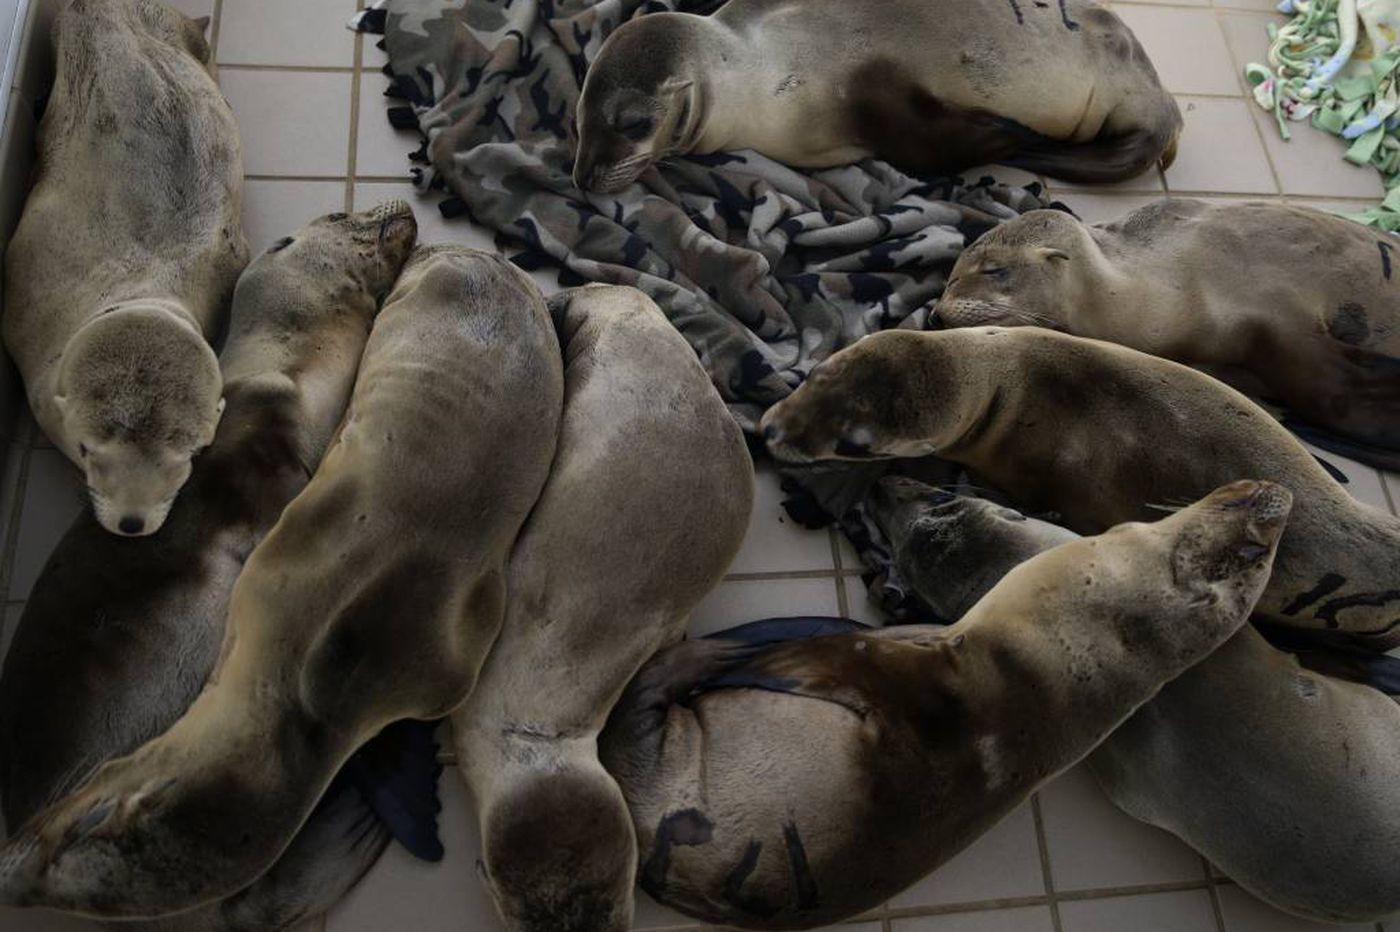 Motherless sea lions wash ashore in Calif.